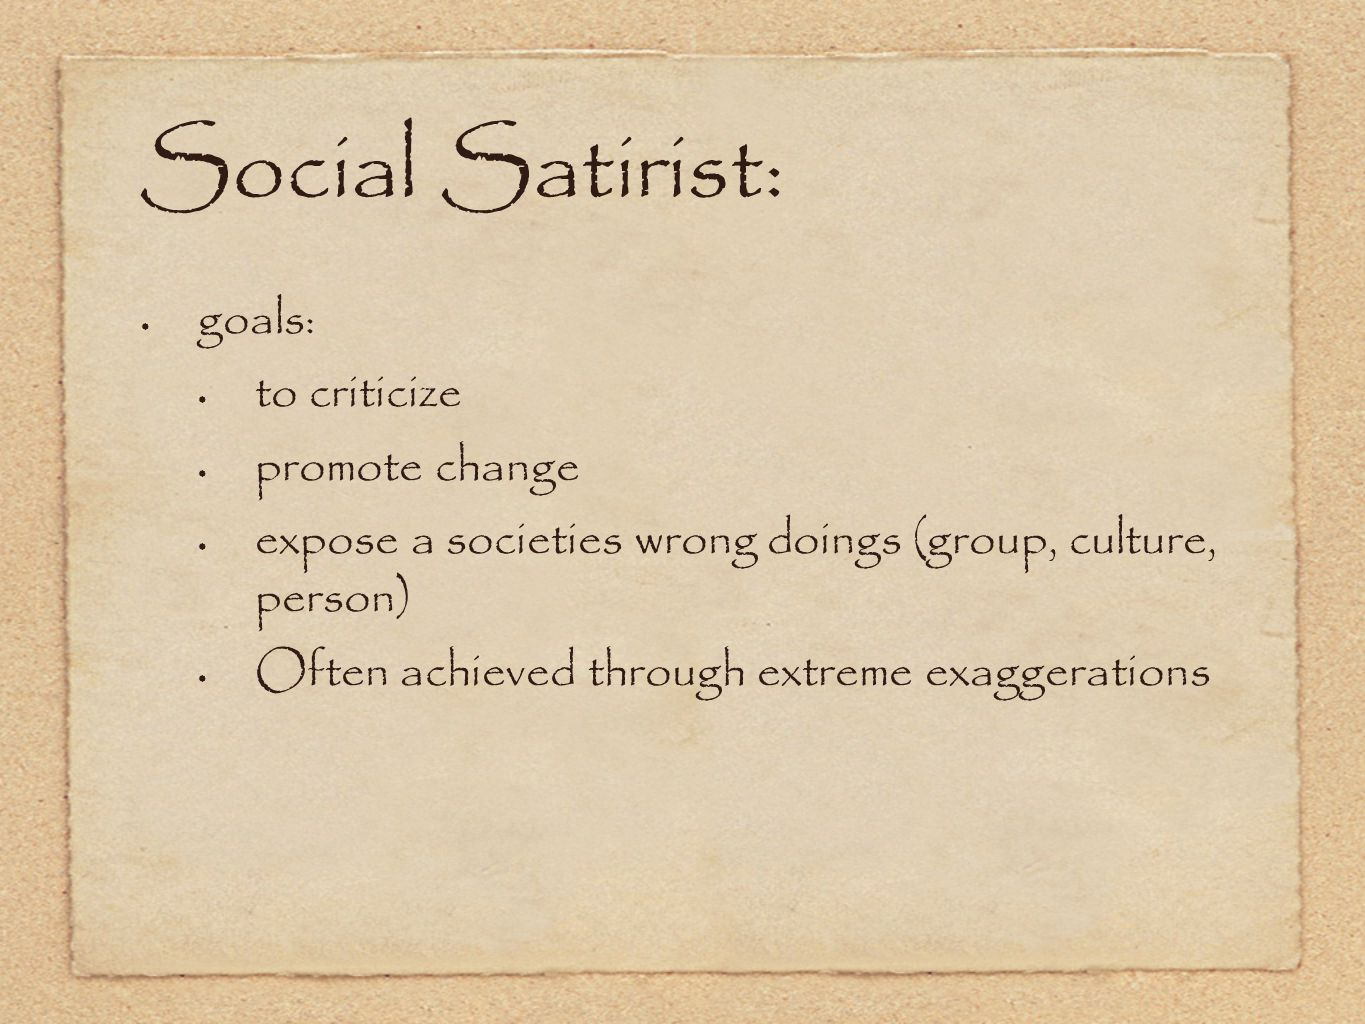 Social Satirist: goals: to criticize promote change expose a societies wrong doings (group, culture, person) Often achieved through extreme exaggerations